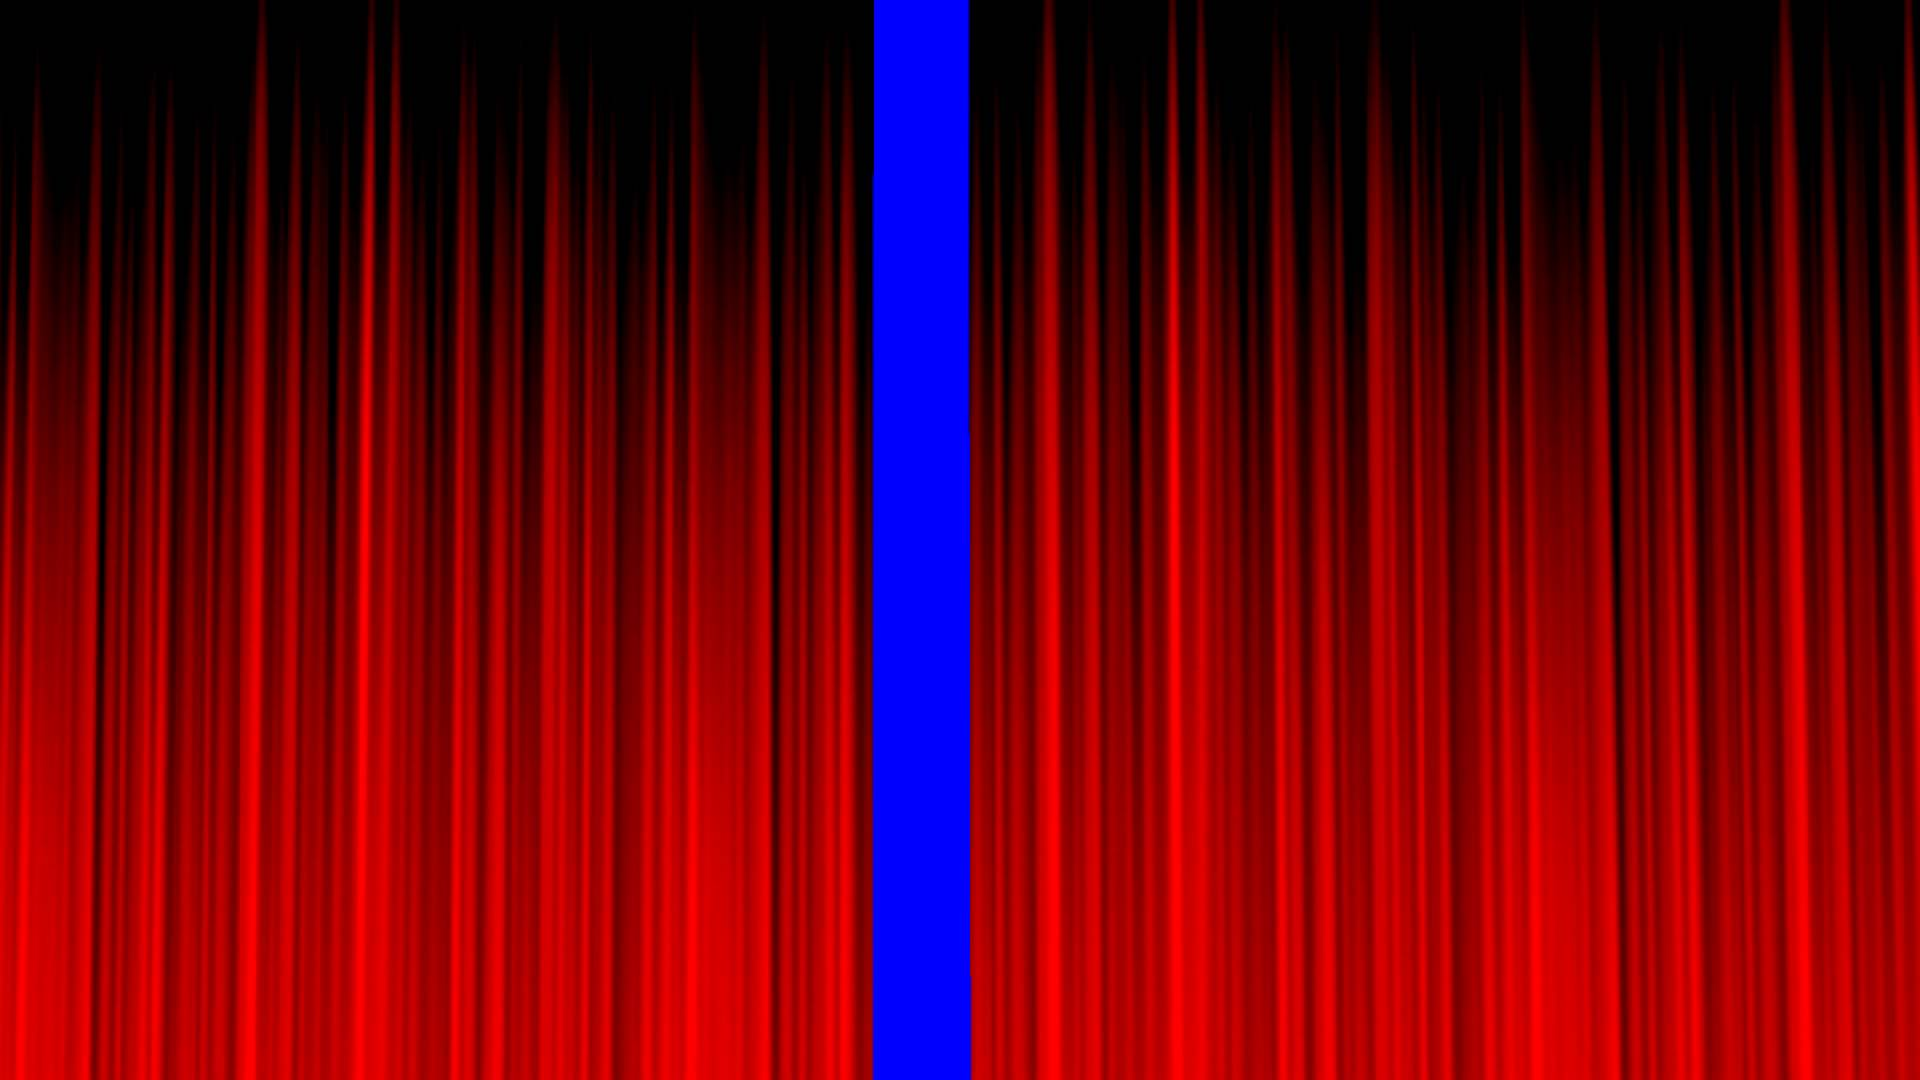 Curtain clipart screen. Stage blue clean red